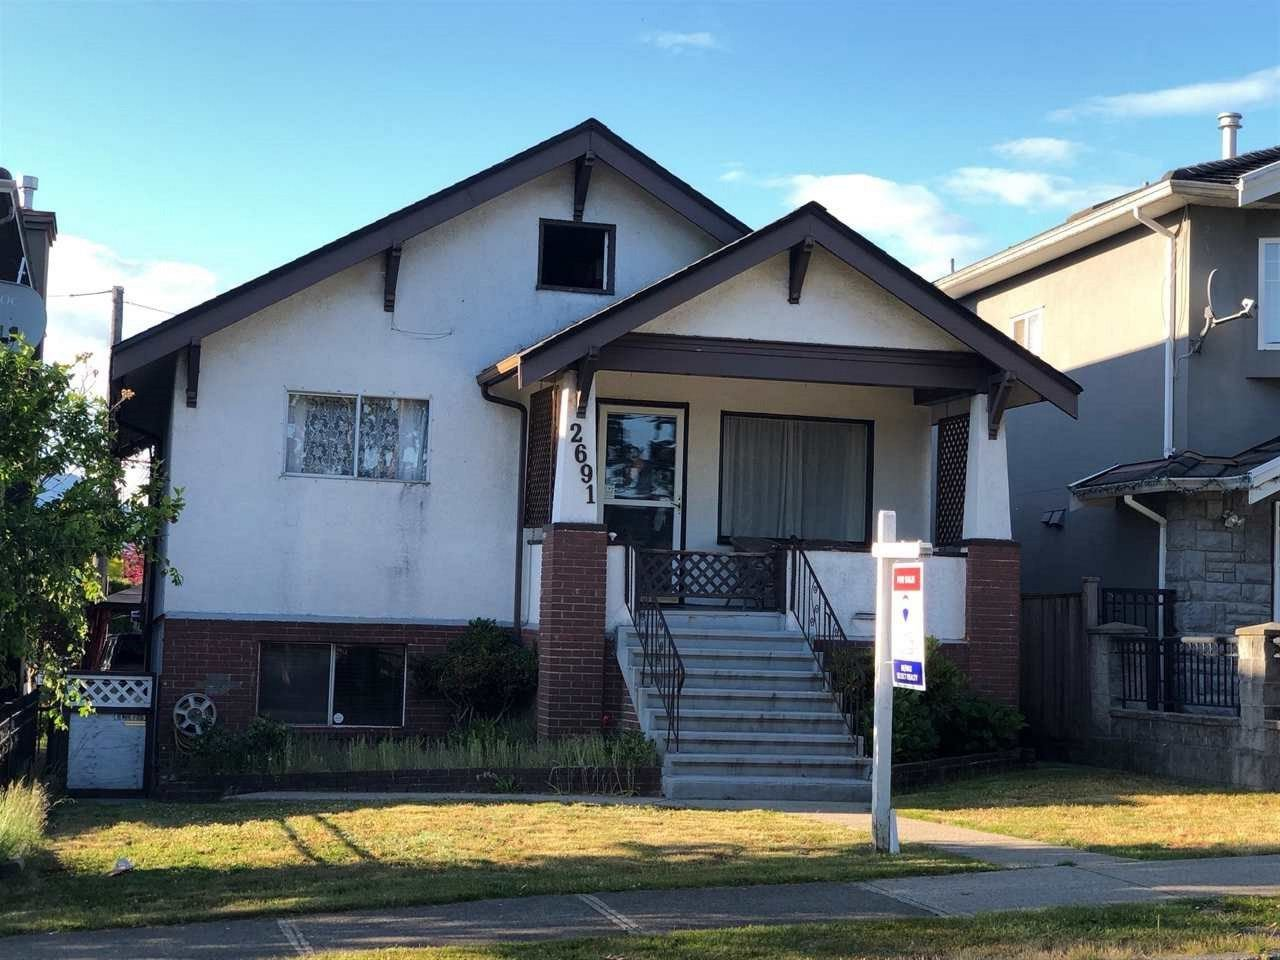 Main Photo: 2691 GRANT Street in Vancouver: Renfrew VE House for sale (Vancouver East)  : MLS®# R2293083